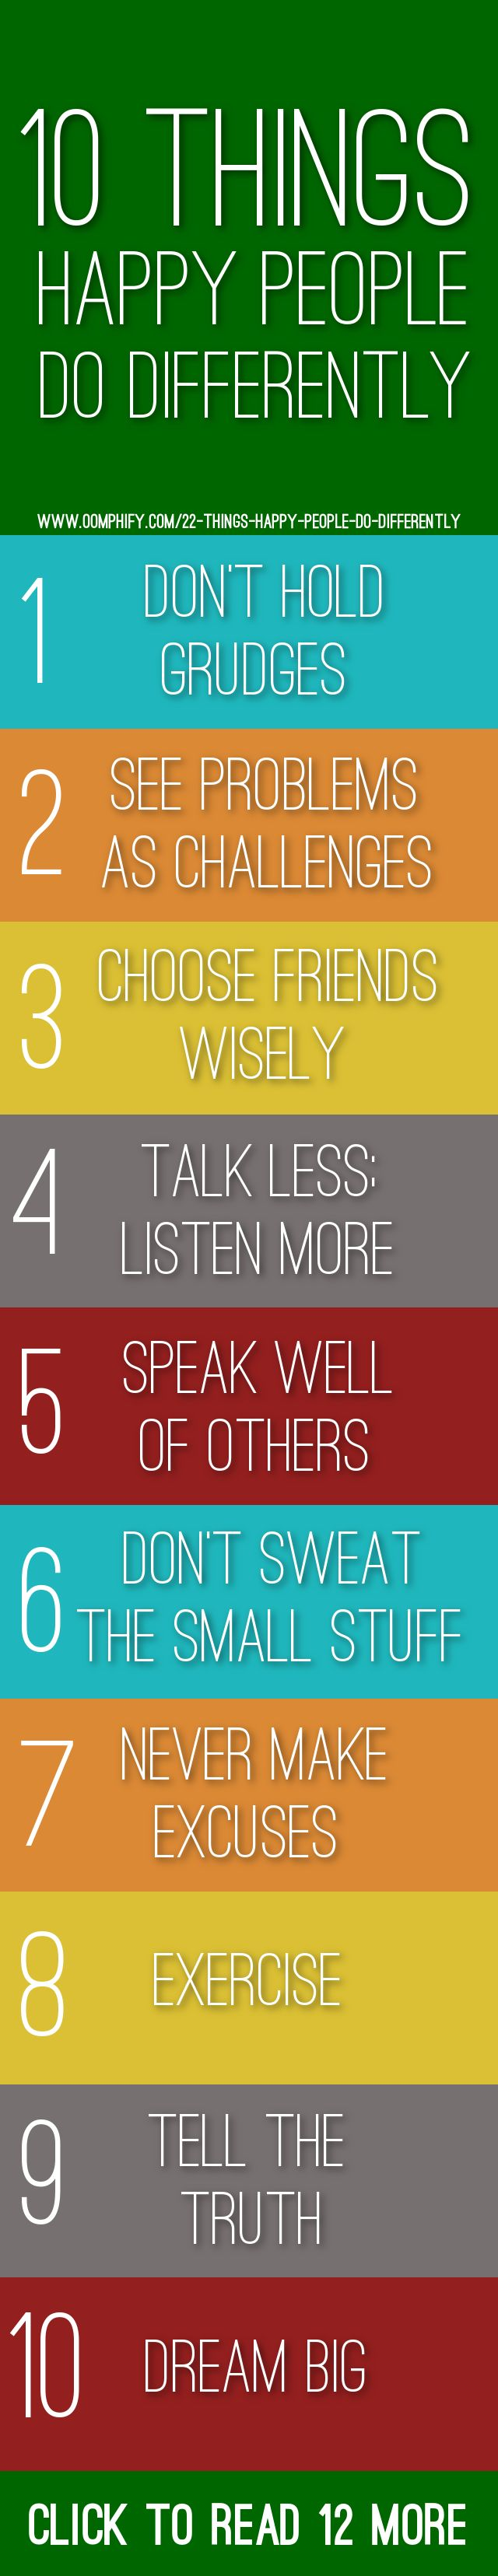 10 things happy people do differently #happy #happiness #health #love